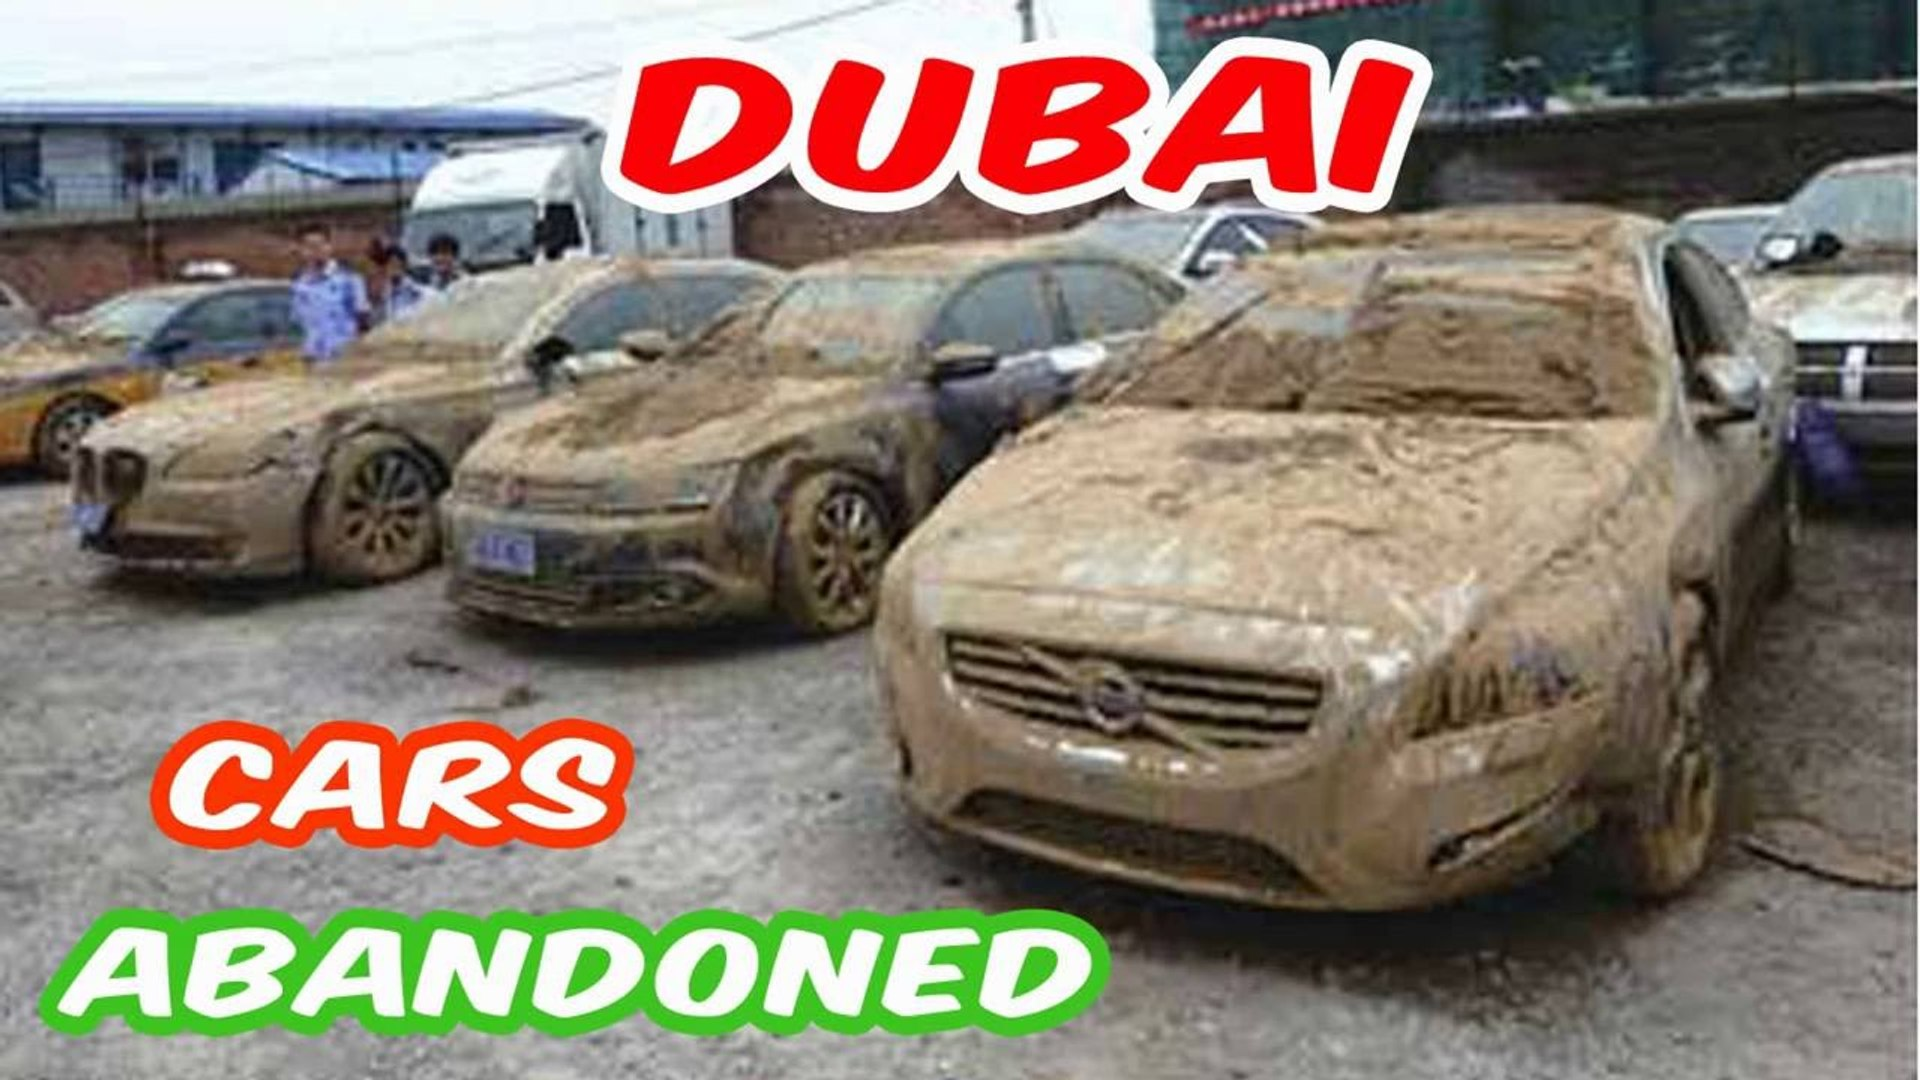 Latest Dubai S Abandoned Cars Forgotten Deserted Expensive Airport Buy Exotic Auction Video Dailymotion